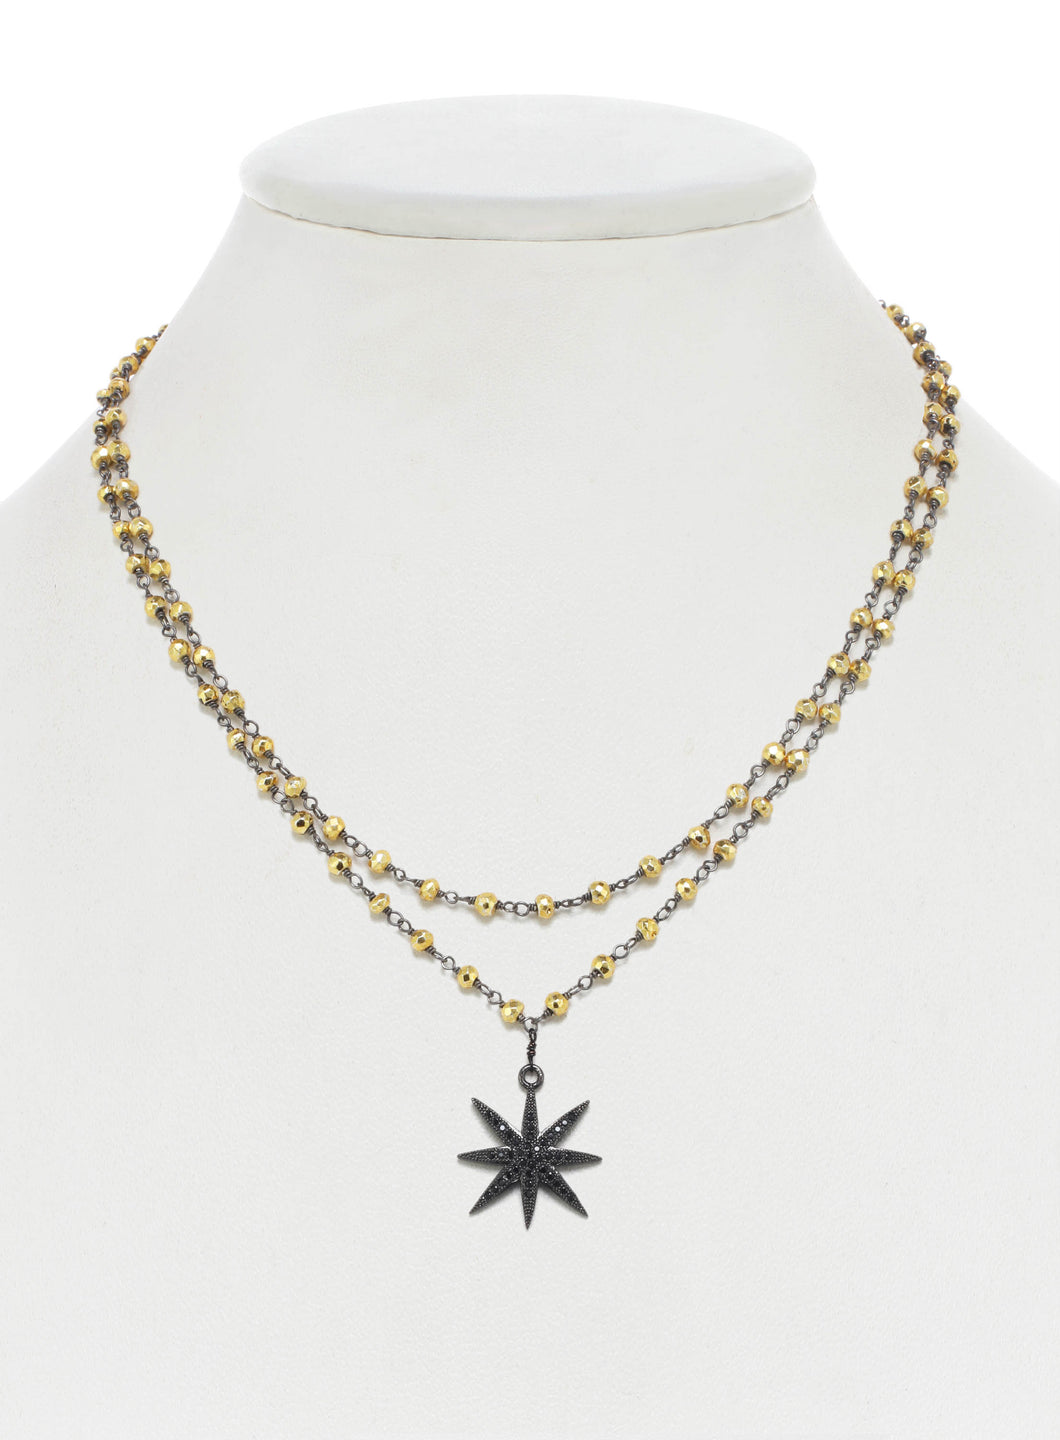 Gold Pyrite and Black Cubic Zirconia Star Necklace